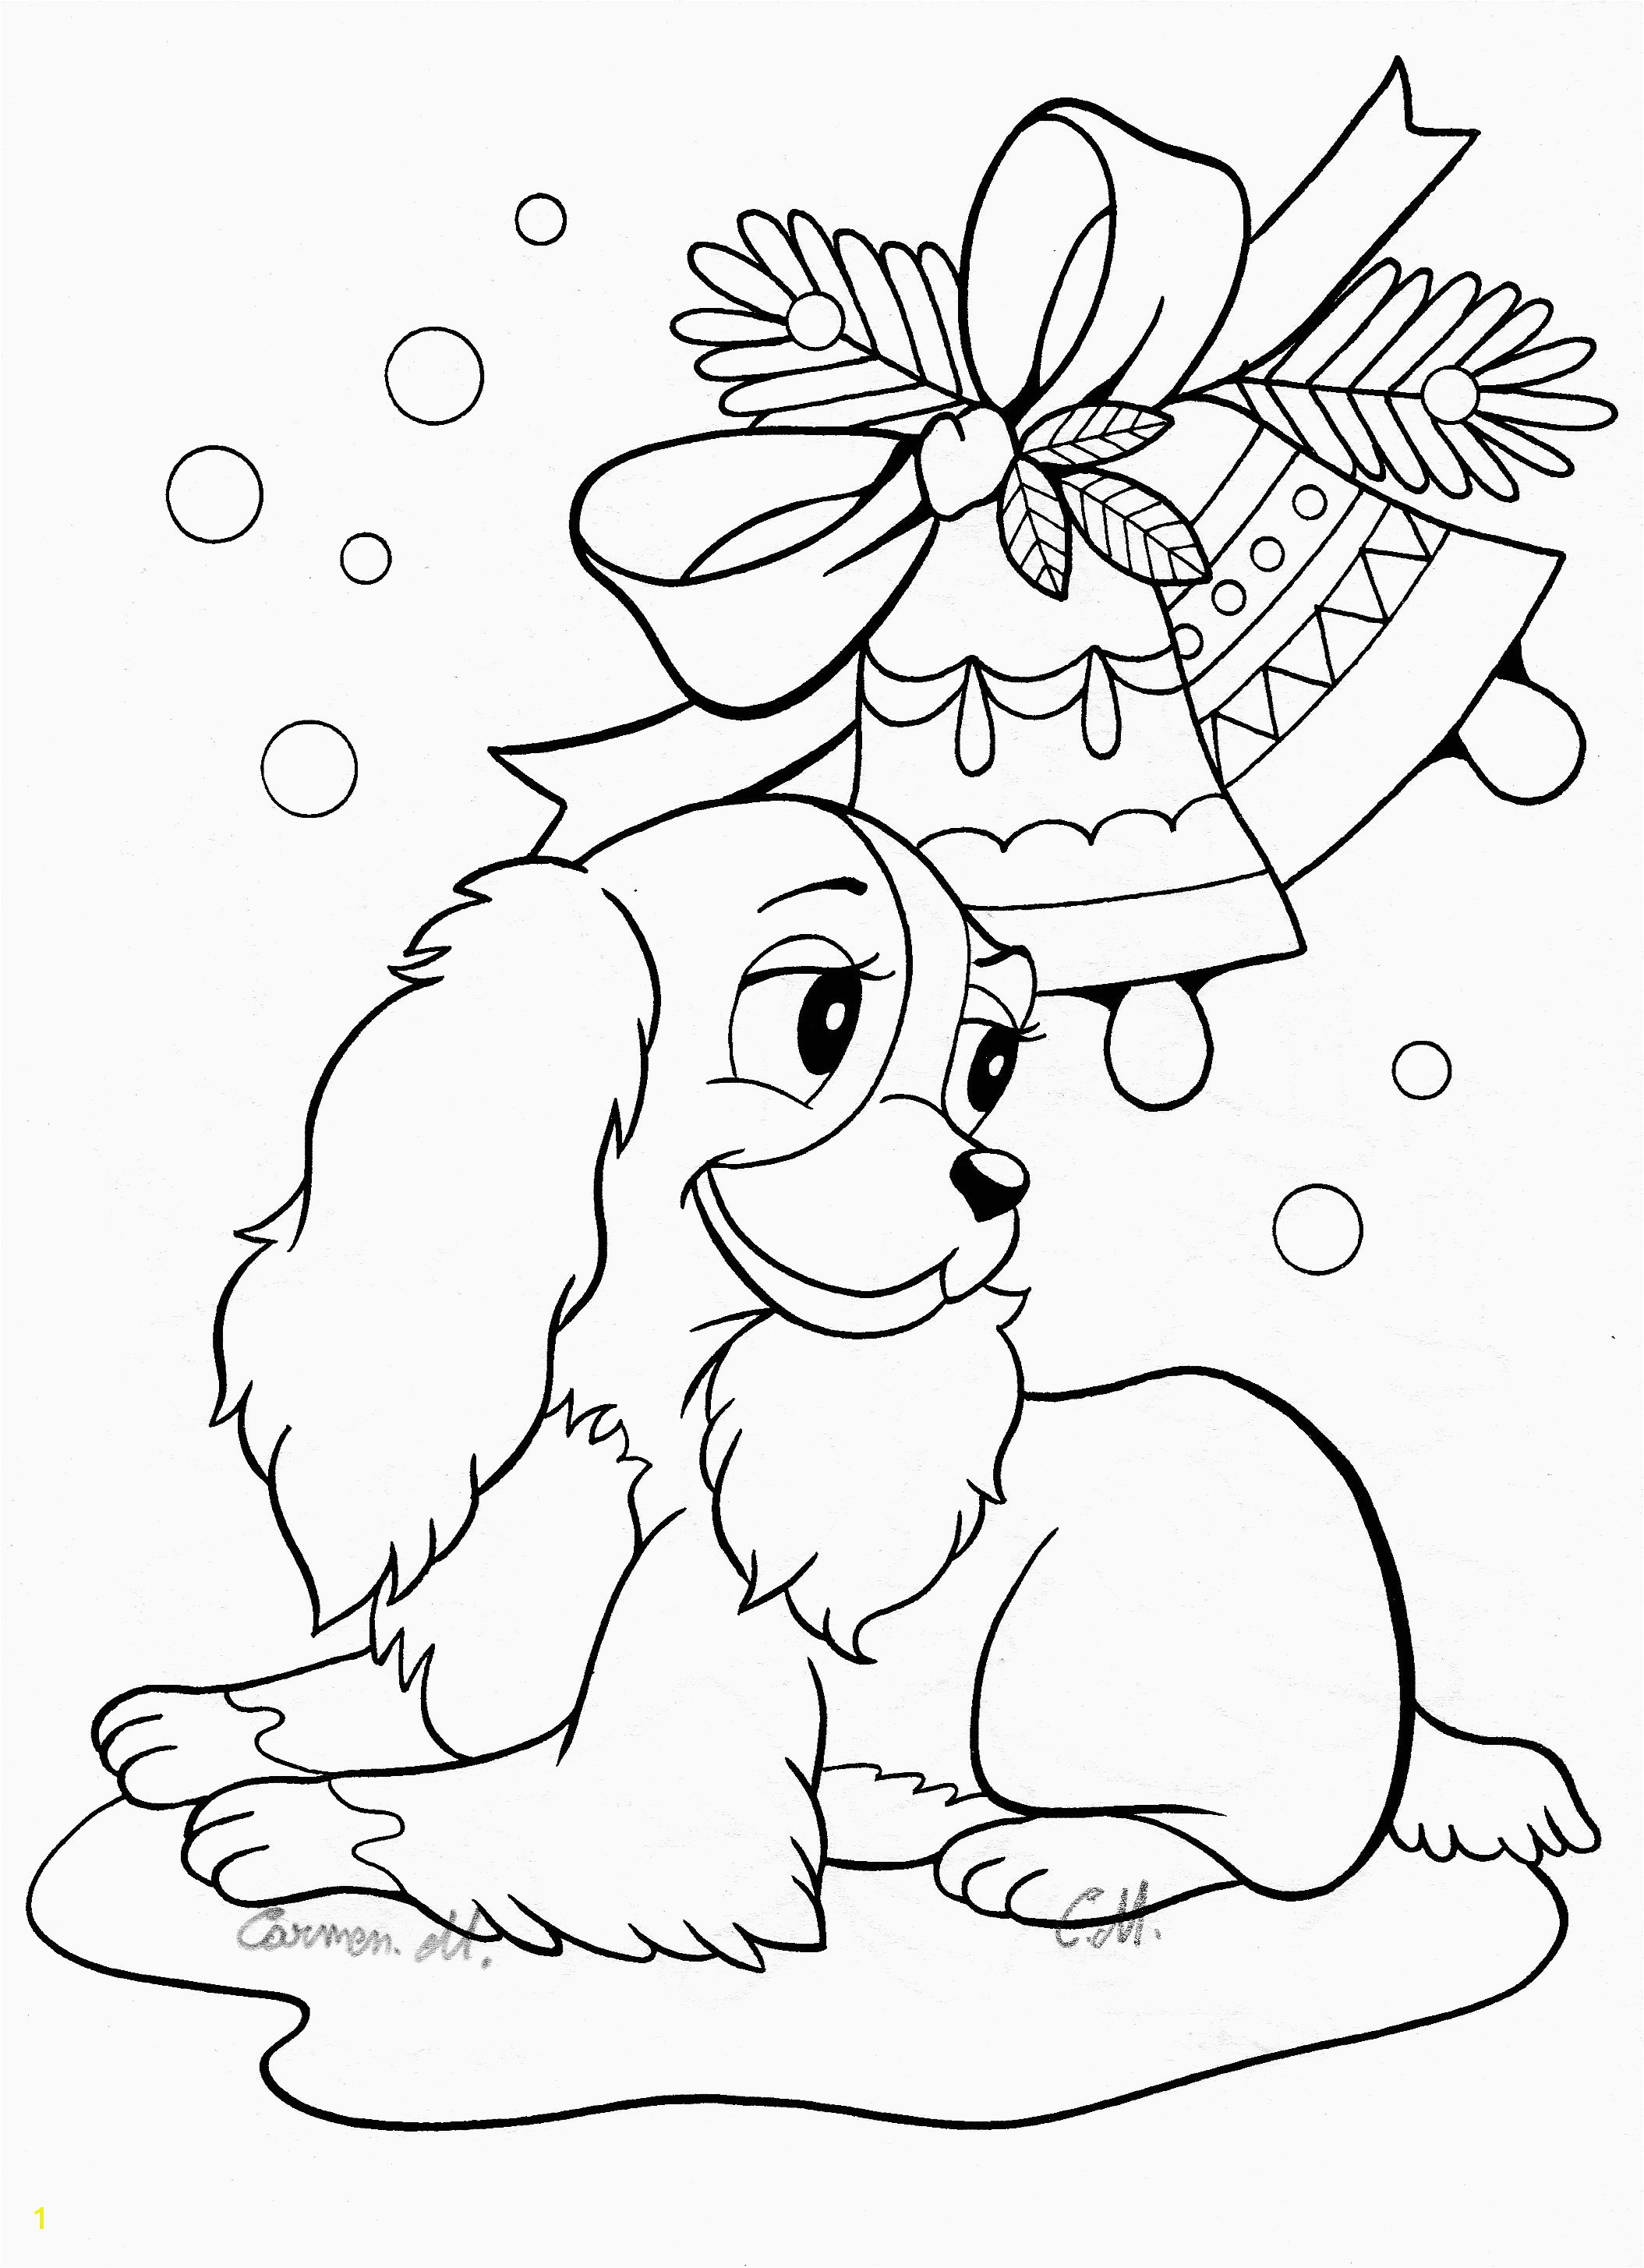 Free Downloadable Coloring Pages New Awesome Coloring Pages Cute Animals Unique Printable Od Dog Coloring